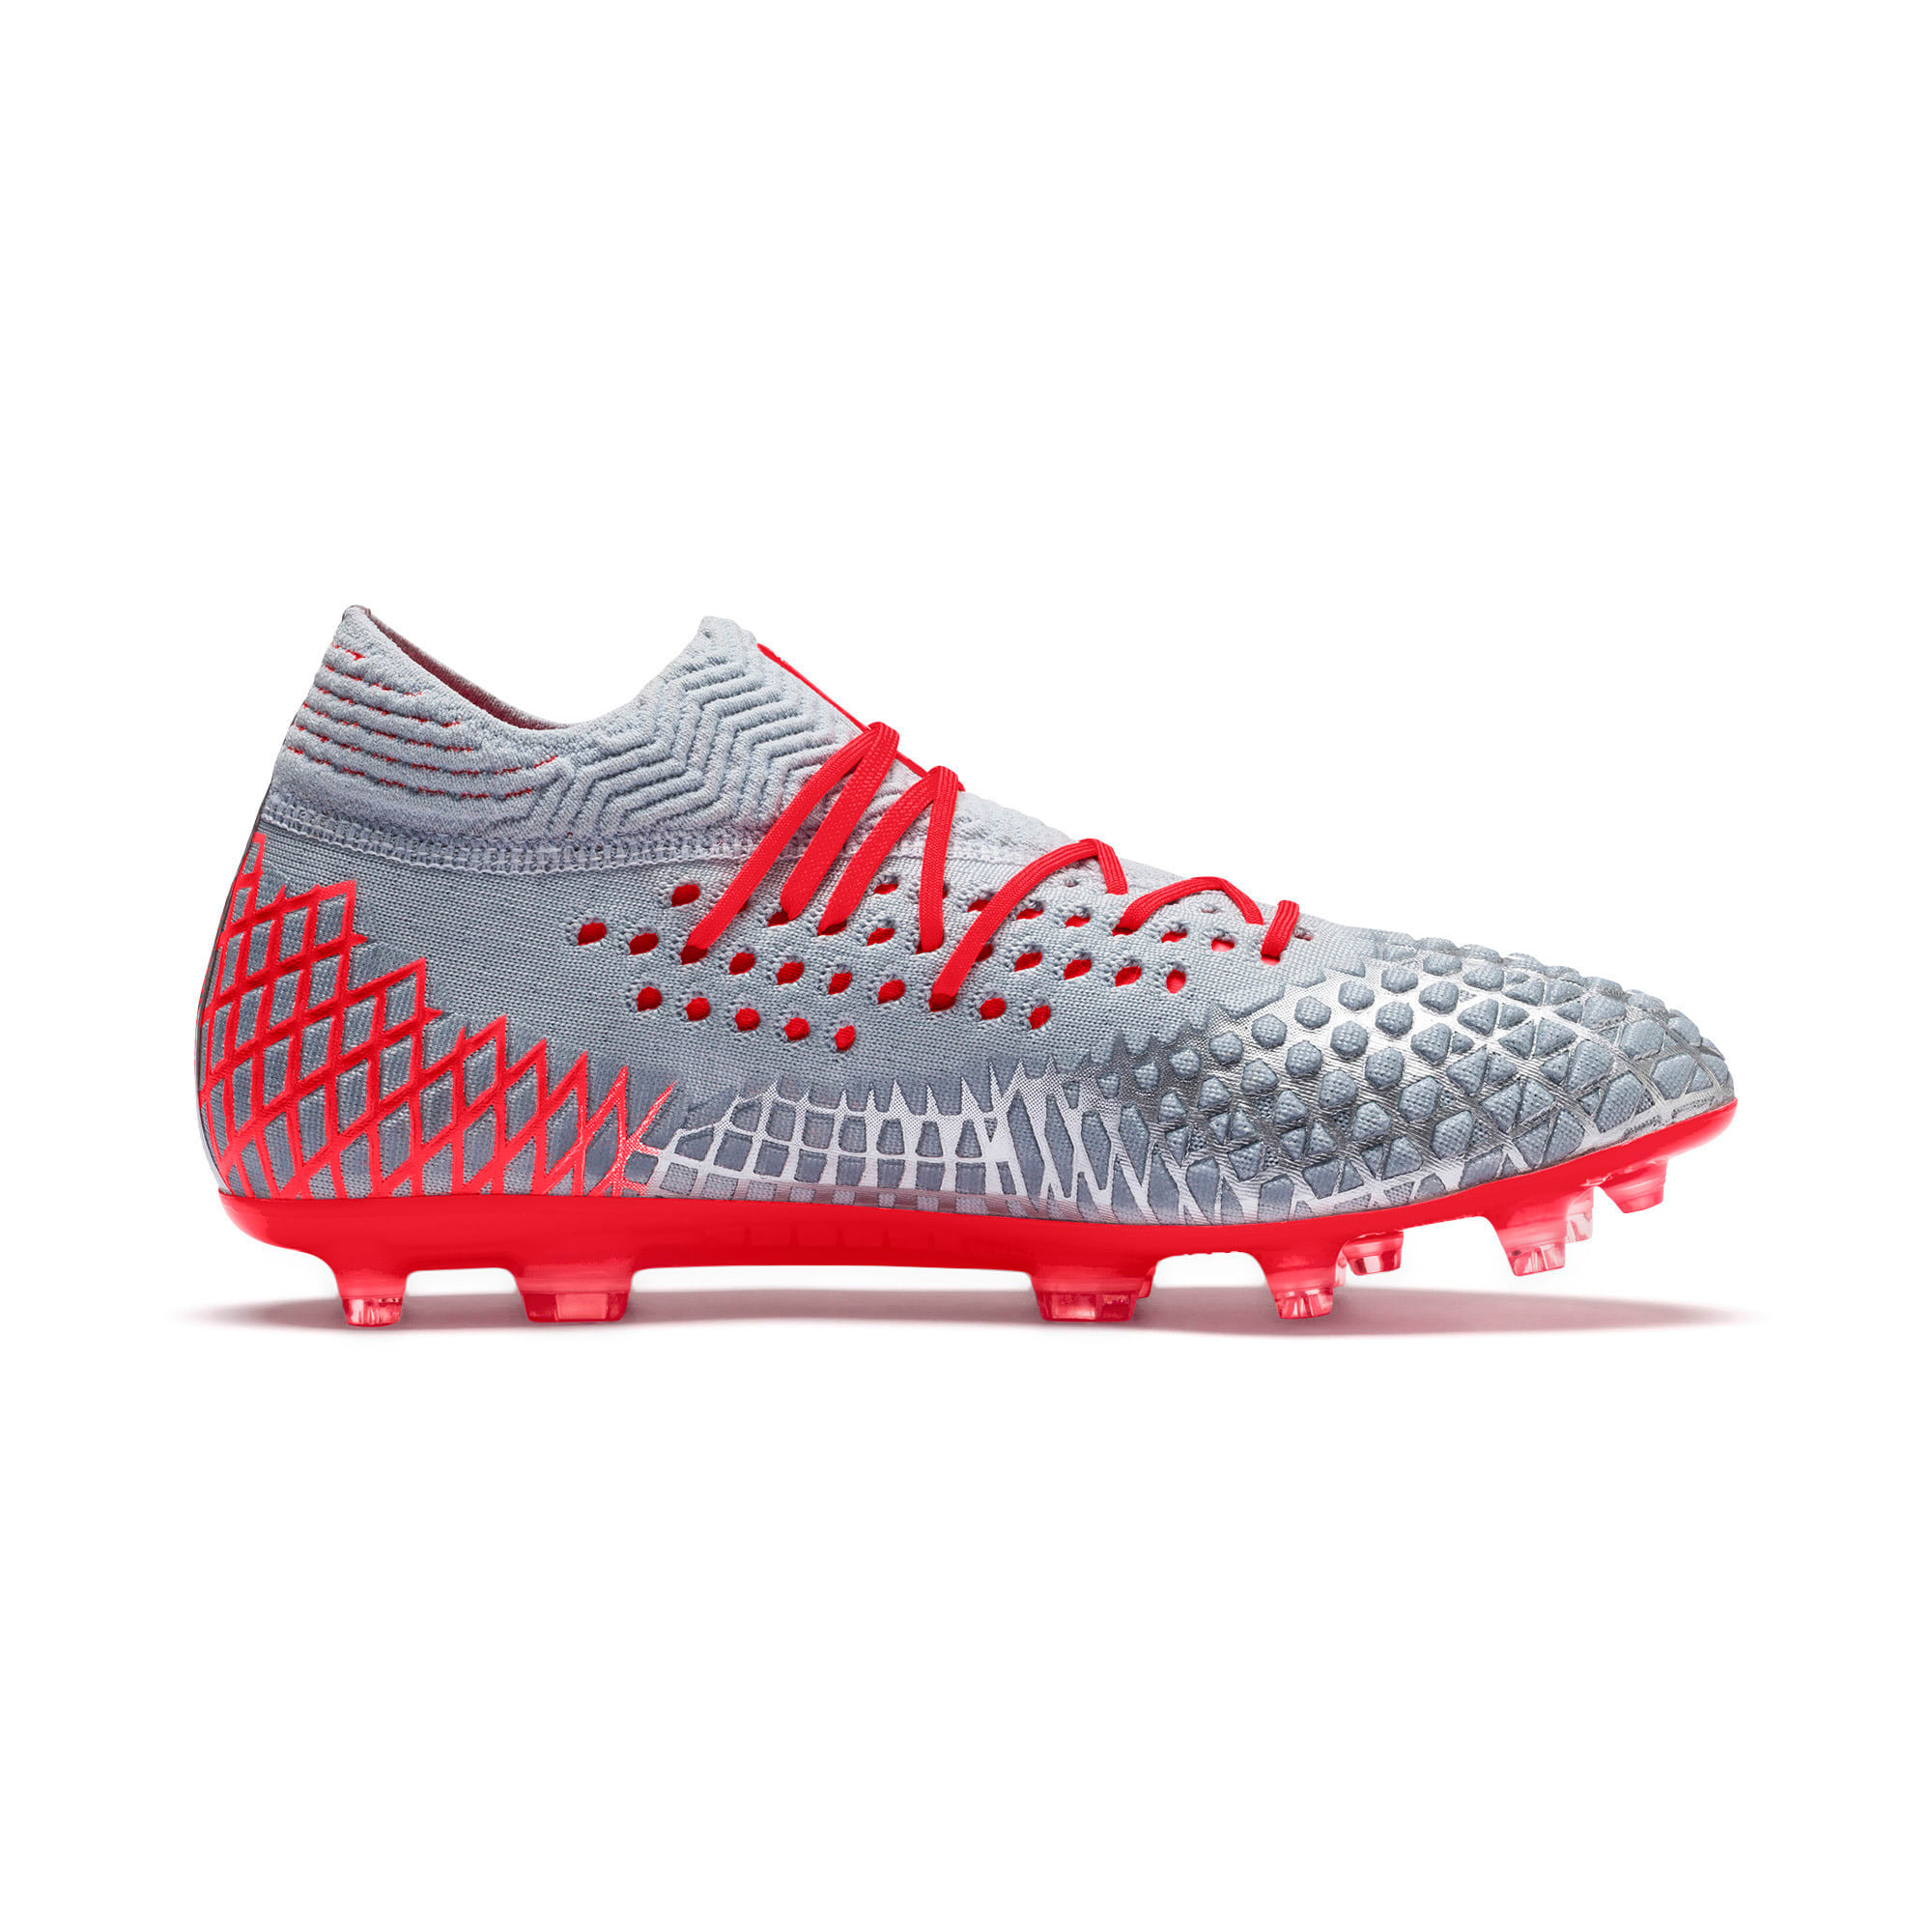 Thumbnail 6 of FUTURE 4.1 NETFIT FG/AG Men's Football Boots, Blue-Nrgy Red-High Risk Red, medium